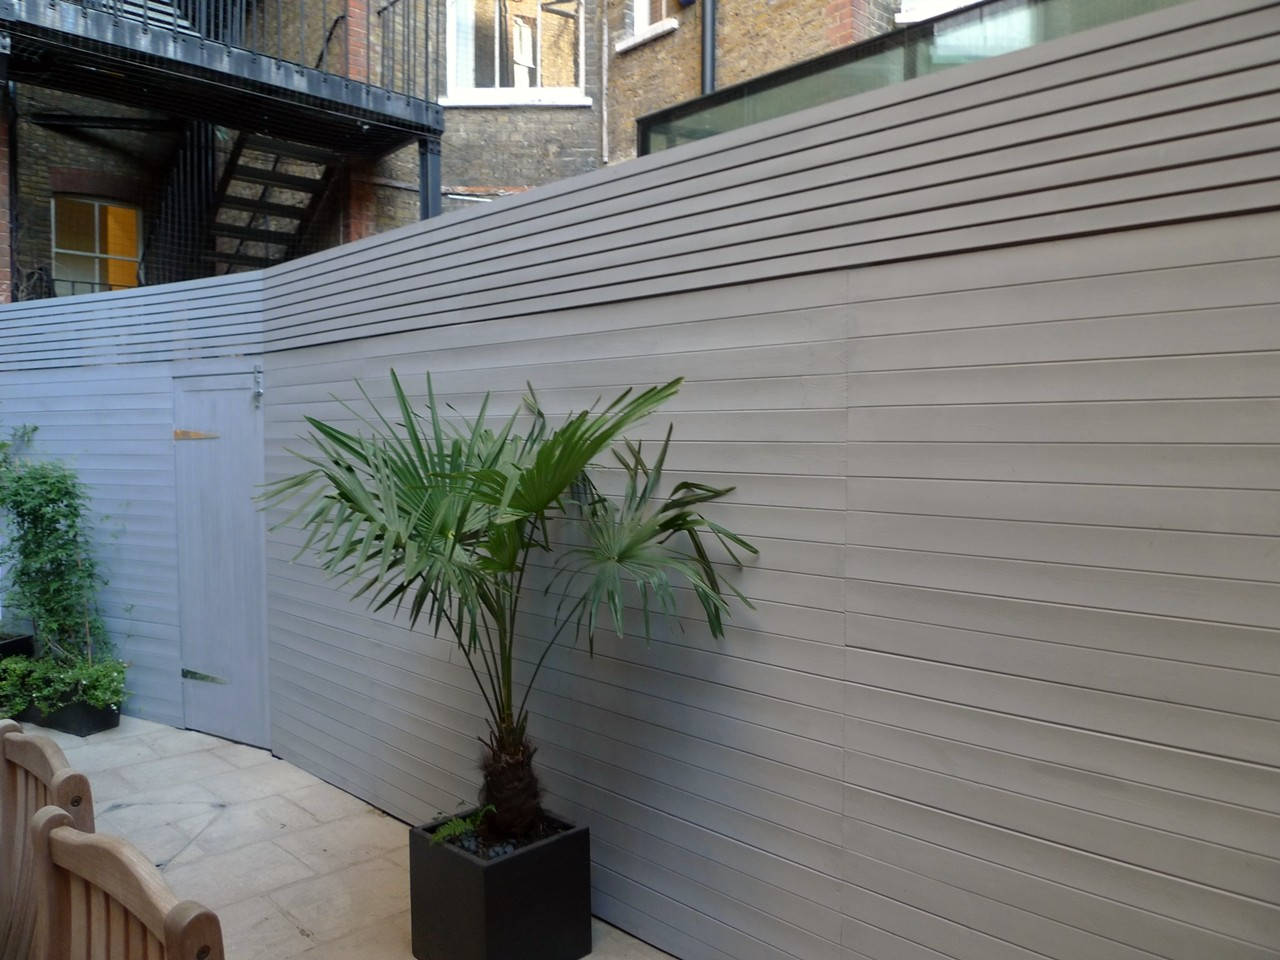 Bespoke modern fence screen trellis fulham london JPGBespoke fence and privacy screen in grey   London Garden Blog. Garden Fence Paint Uk. Home Design Ideas